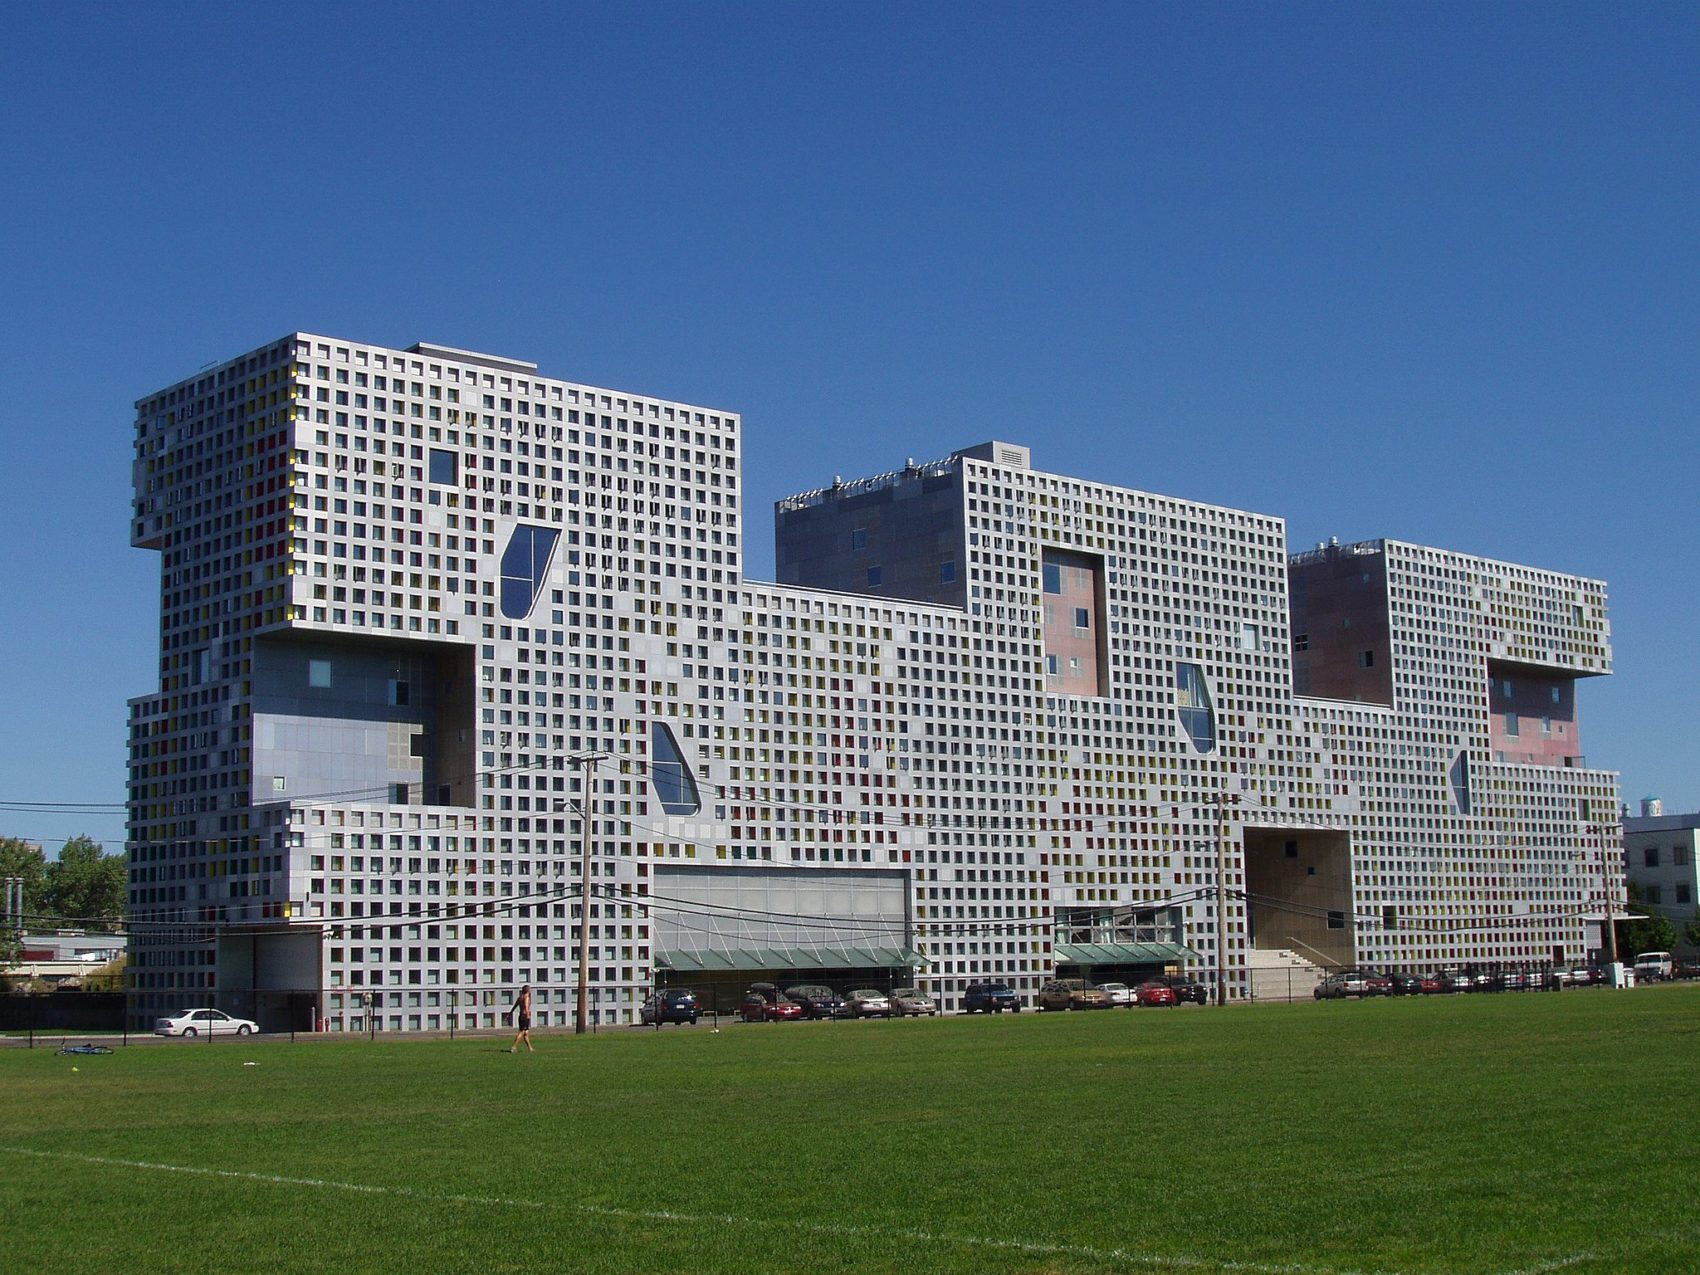 MIT's Simmons Hall in Cambridge. (Courtesy Daderot/Wikimedia Commons)